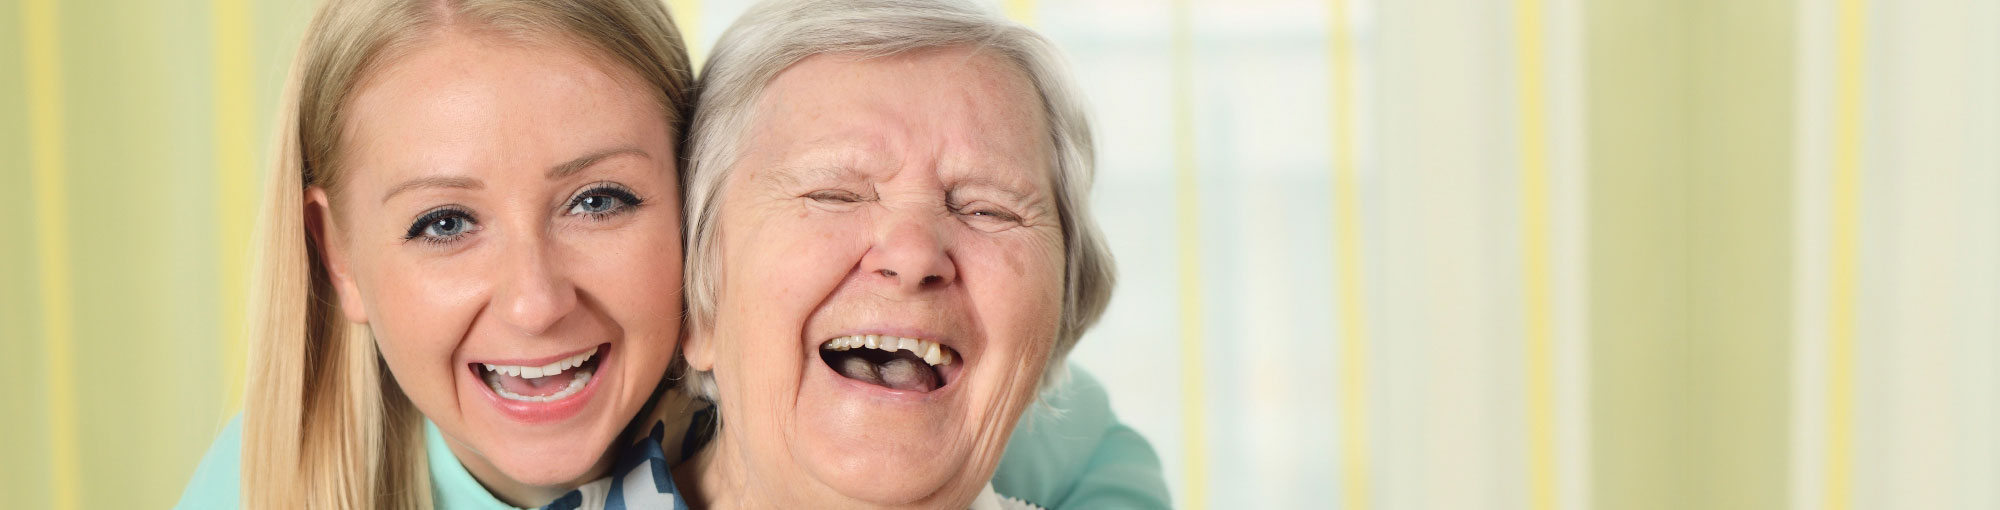 Senior Woman and Assisted Living Aid Laughing